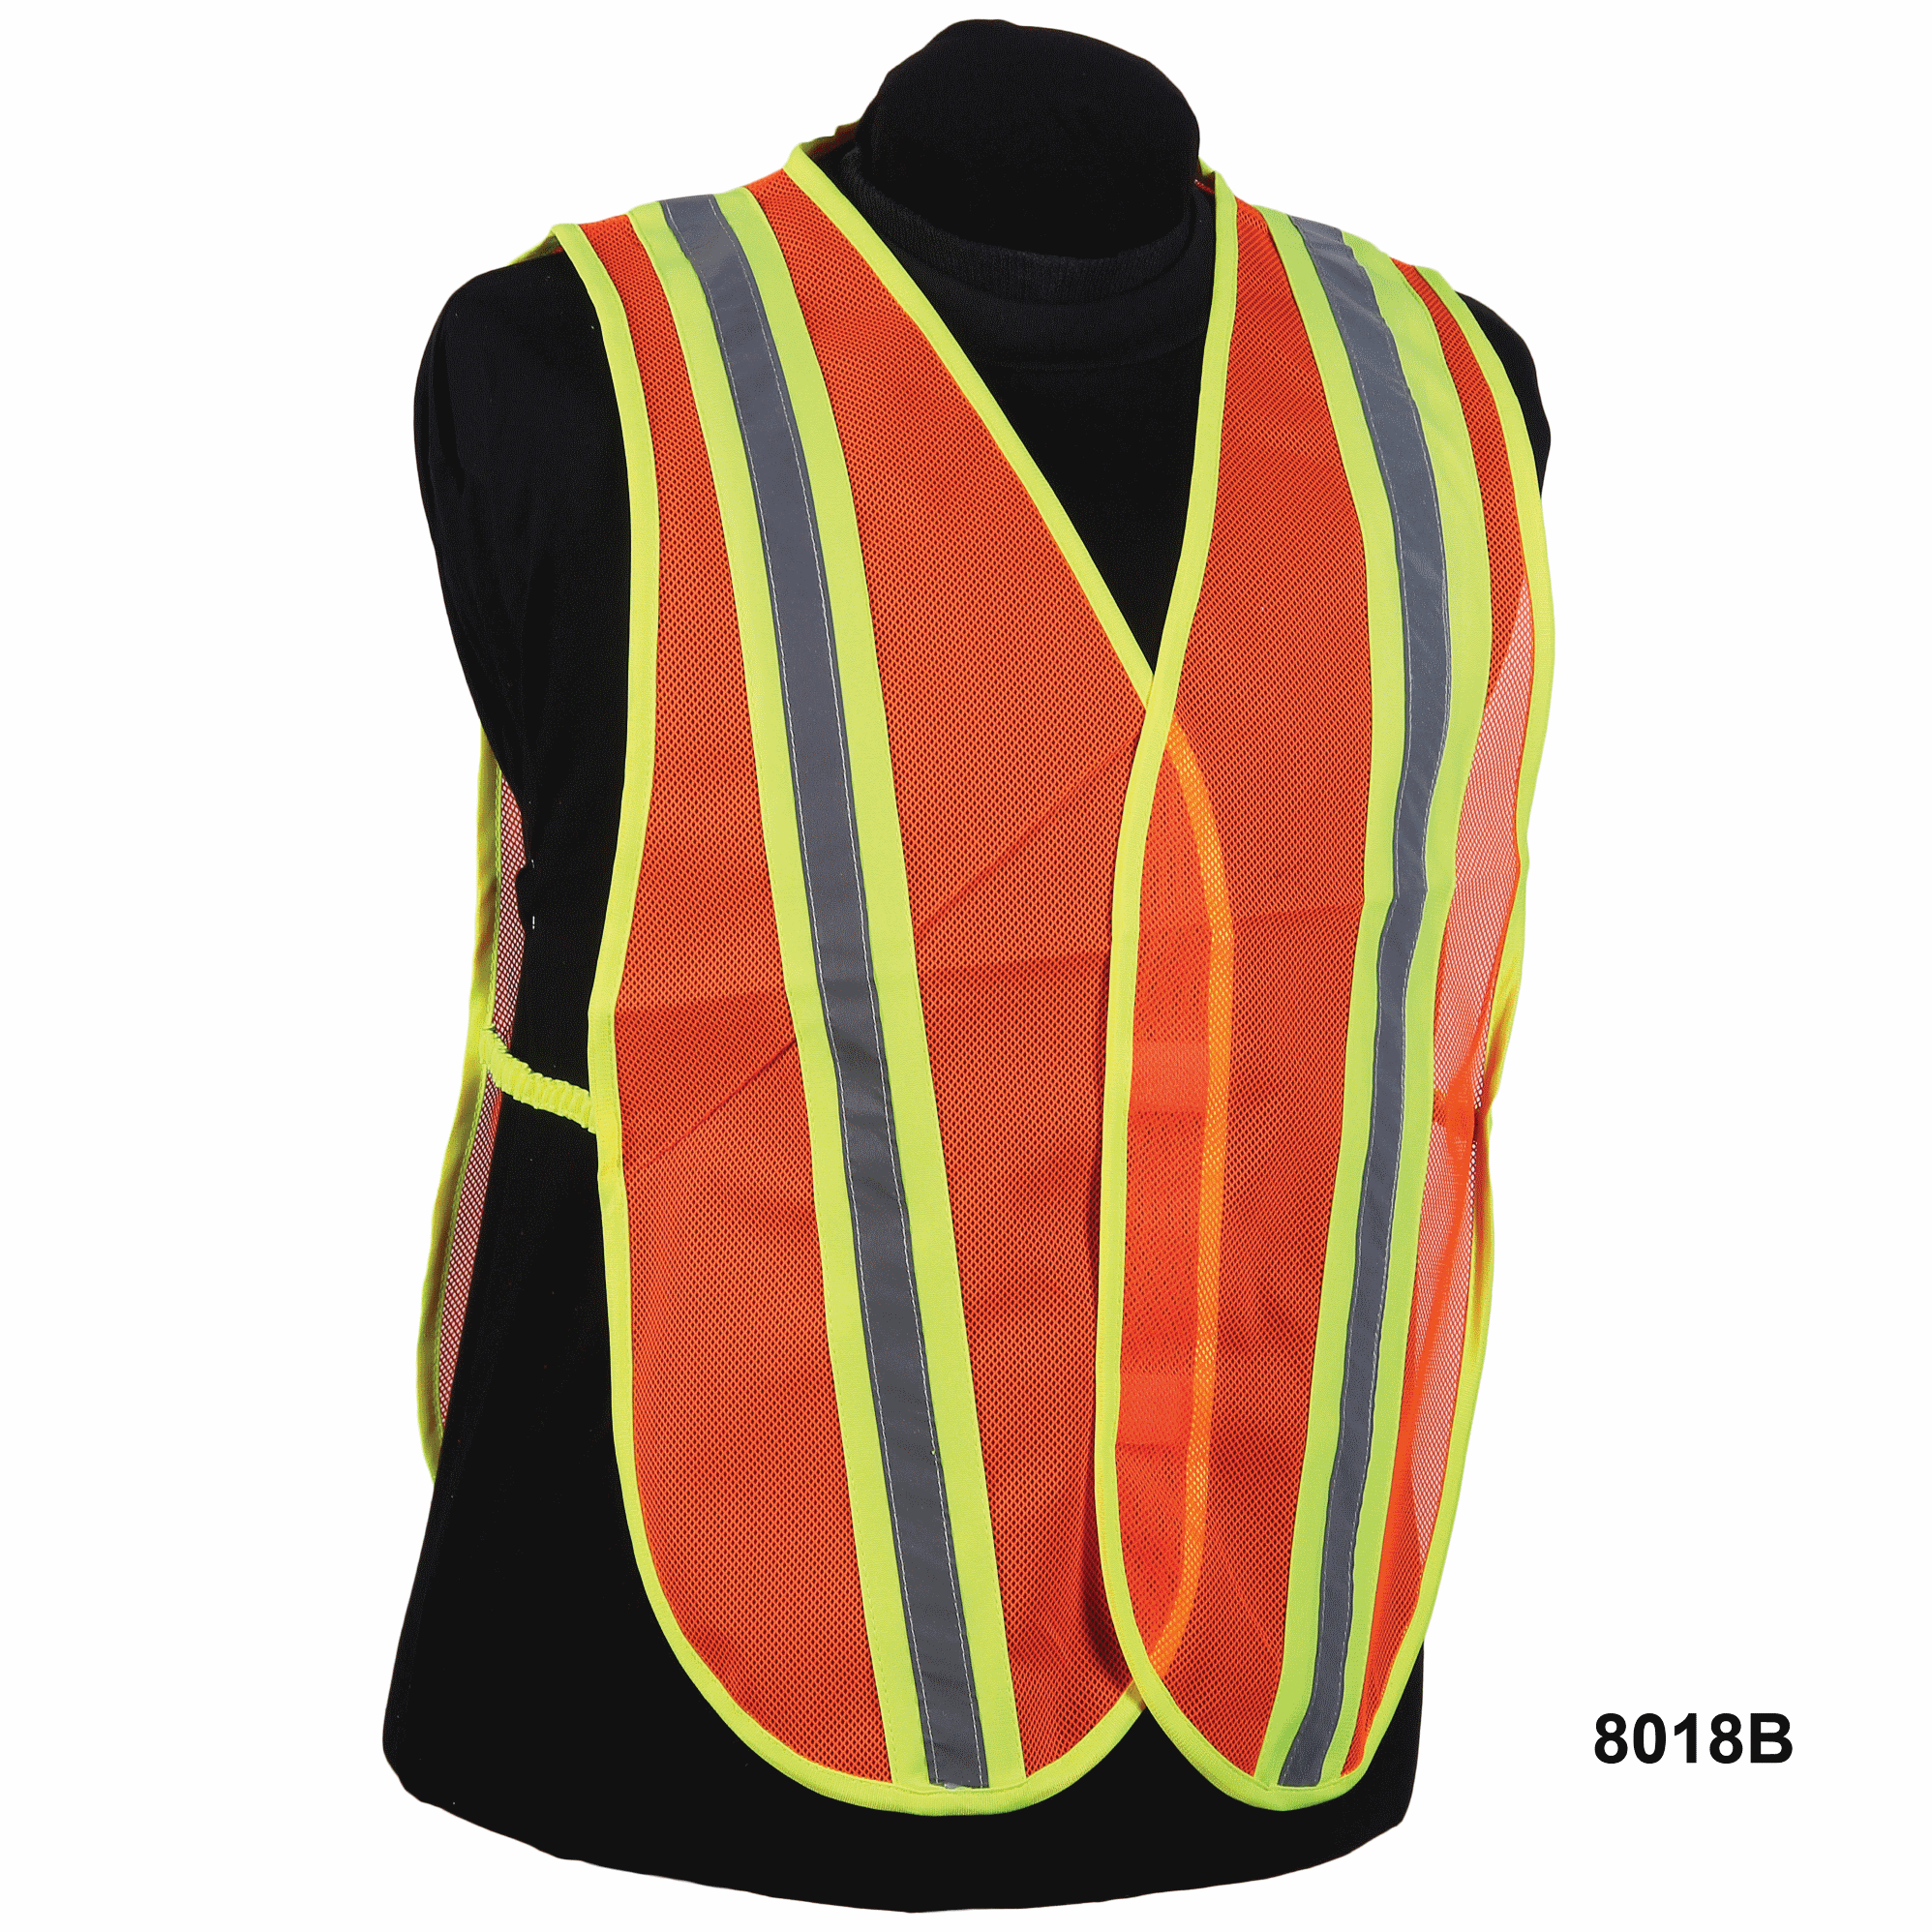 Nylon Orange Mesh Vest w/ Silver & Yellow Stripe